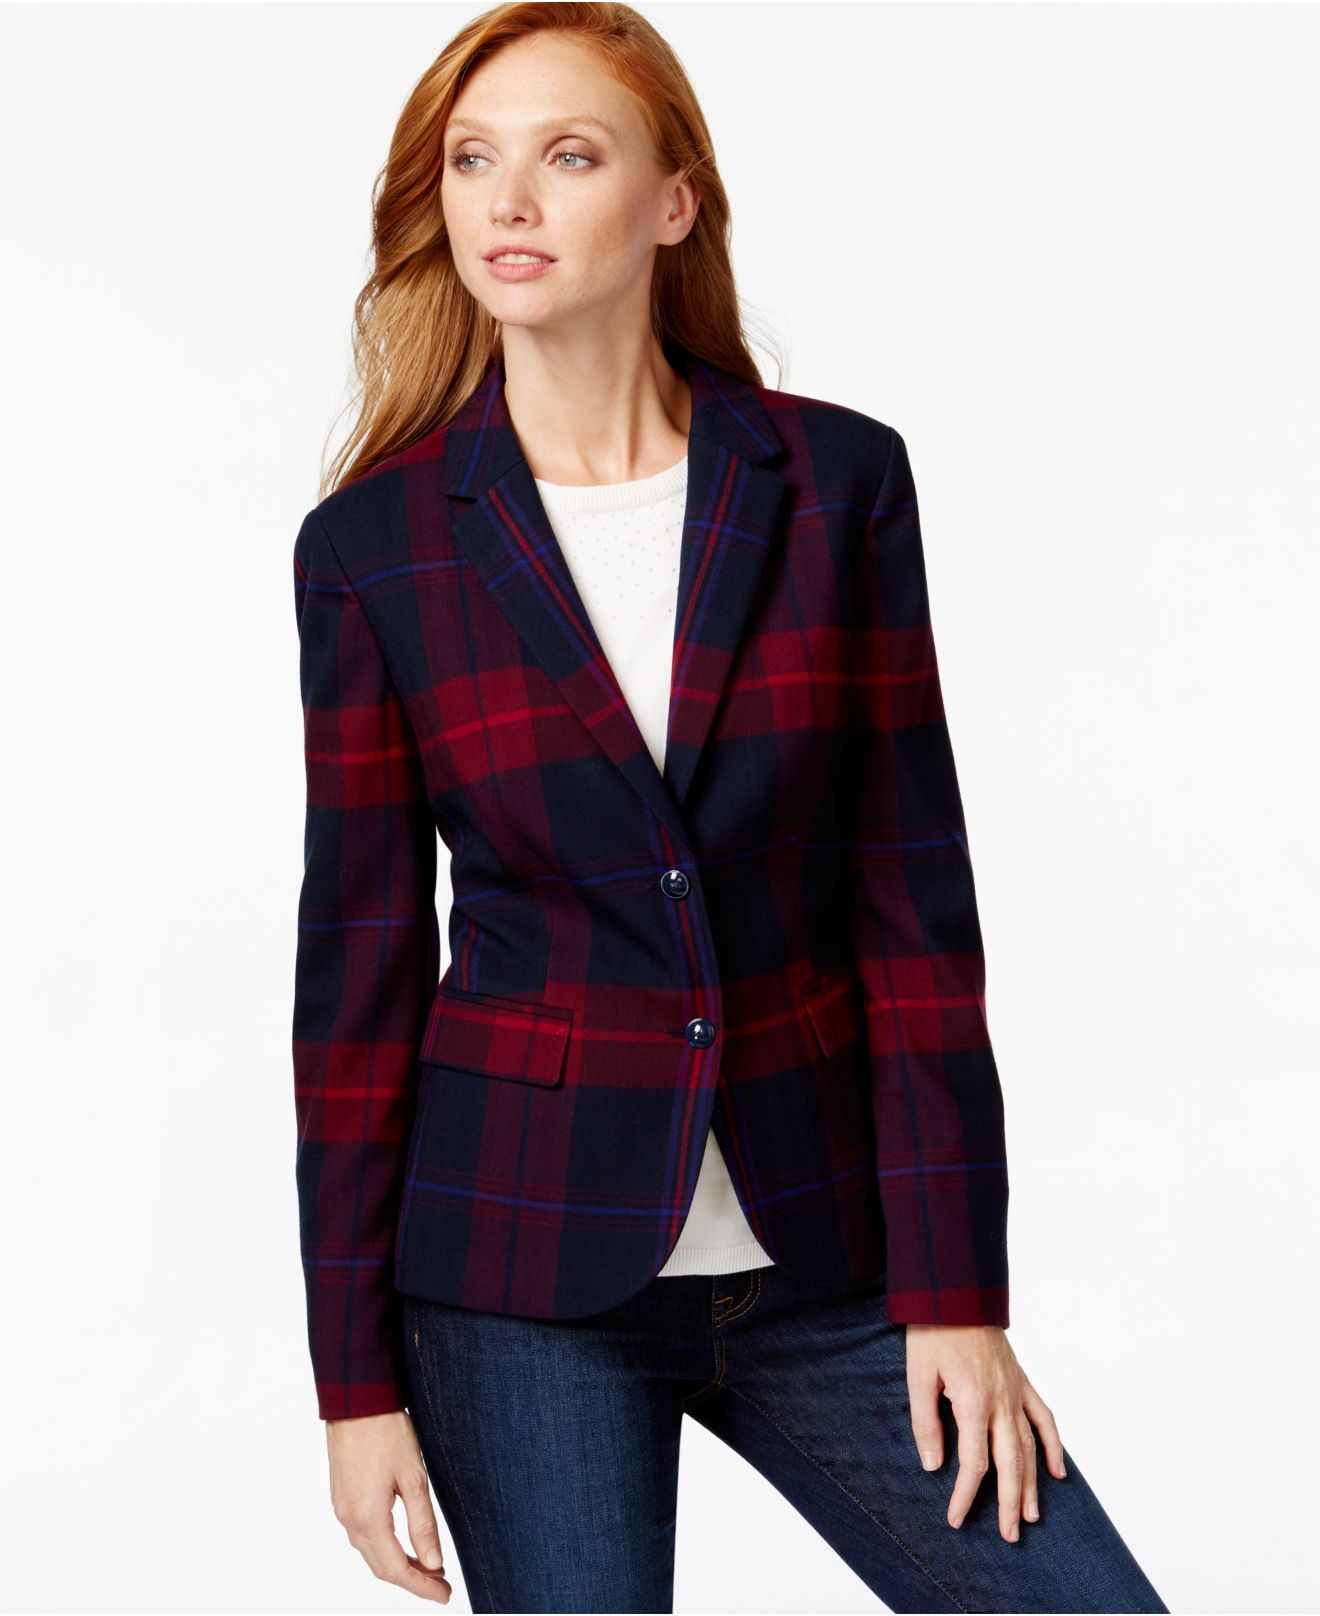 Find a great selection of women's blazers & jackets at distrib-ah3euse9.tk Shop top brands like Vince Camuto, Topshop, Lafayette and more. Free shipping and returns.